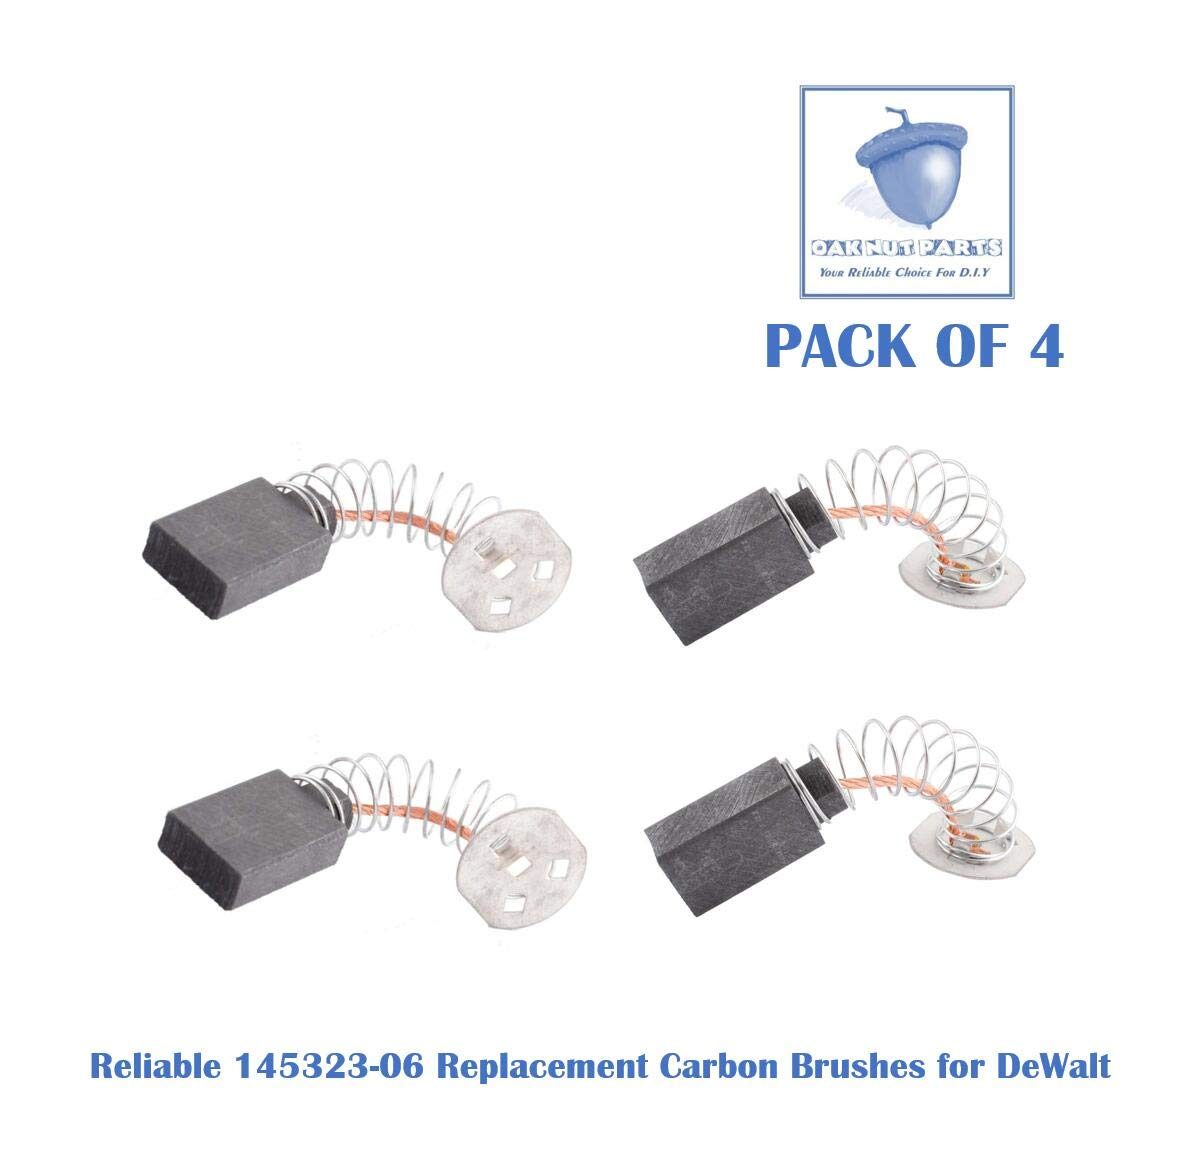 4PCS Reliable 145323-06 Carbon Brushes Replacement for DeWALT, Black & Decker 145323-06, 145323-03 & 145323-02- Fits for DW705 DW708 and Others (4 pcs/pack)